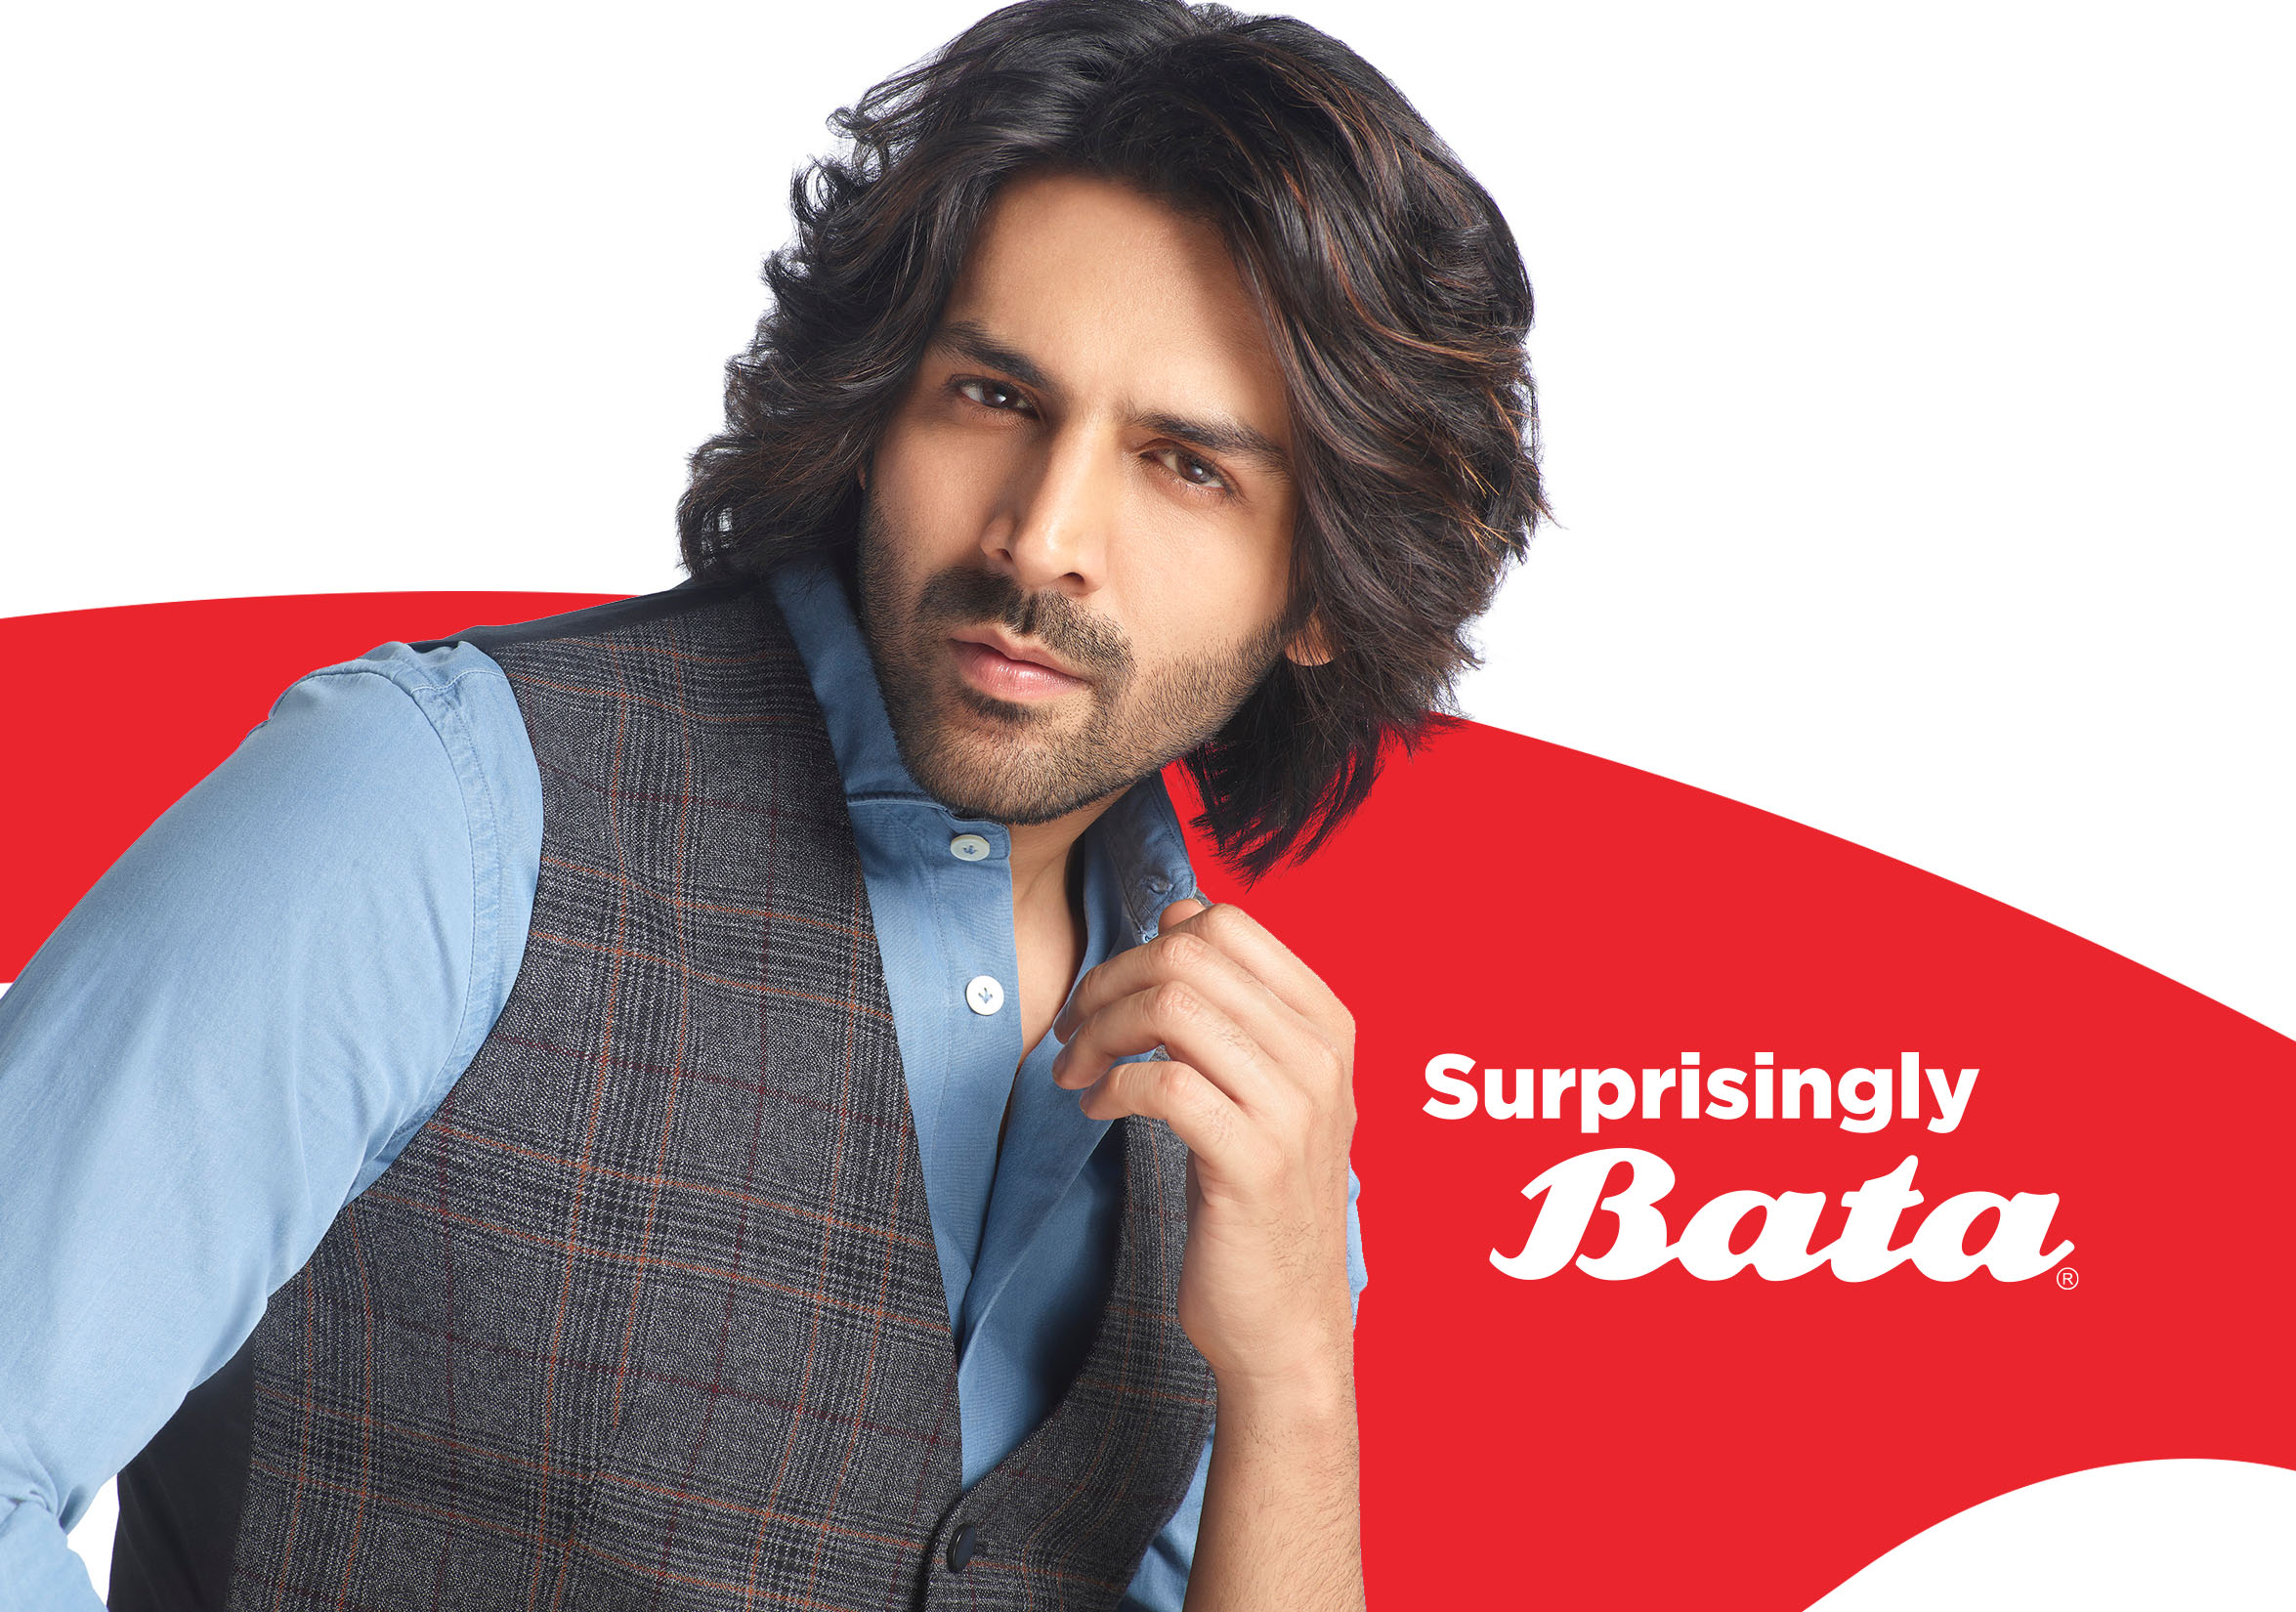 Bata appoints India's heartthrob Kartik Aaryan as the new face of the brand